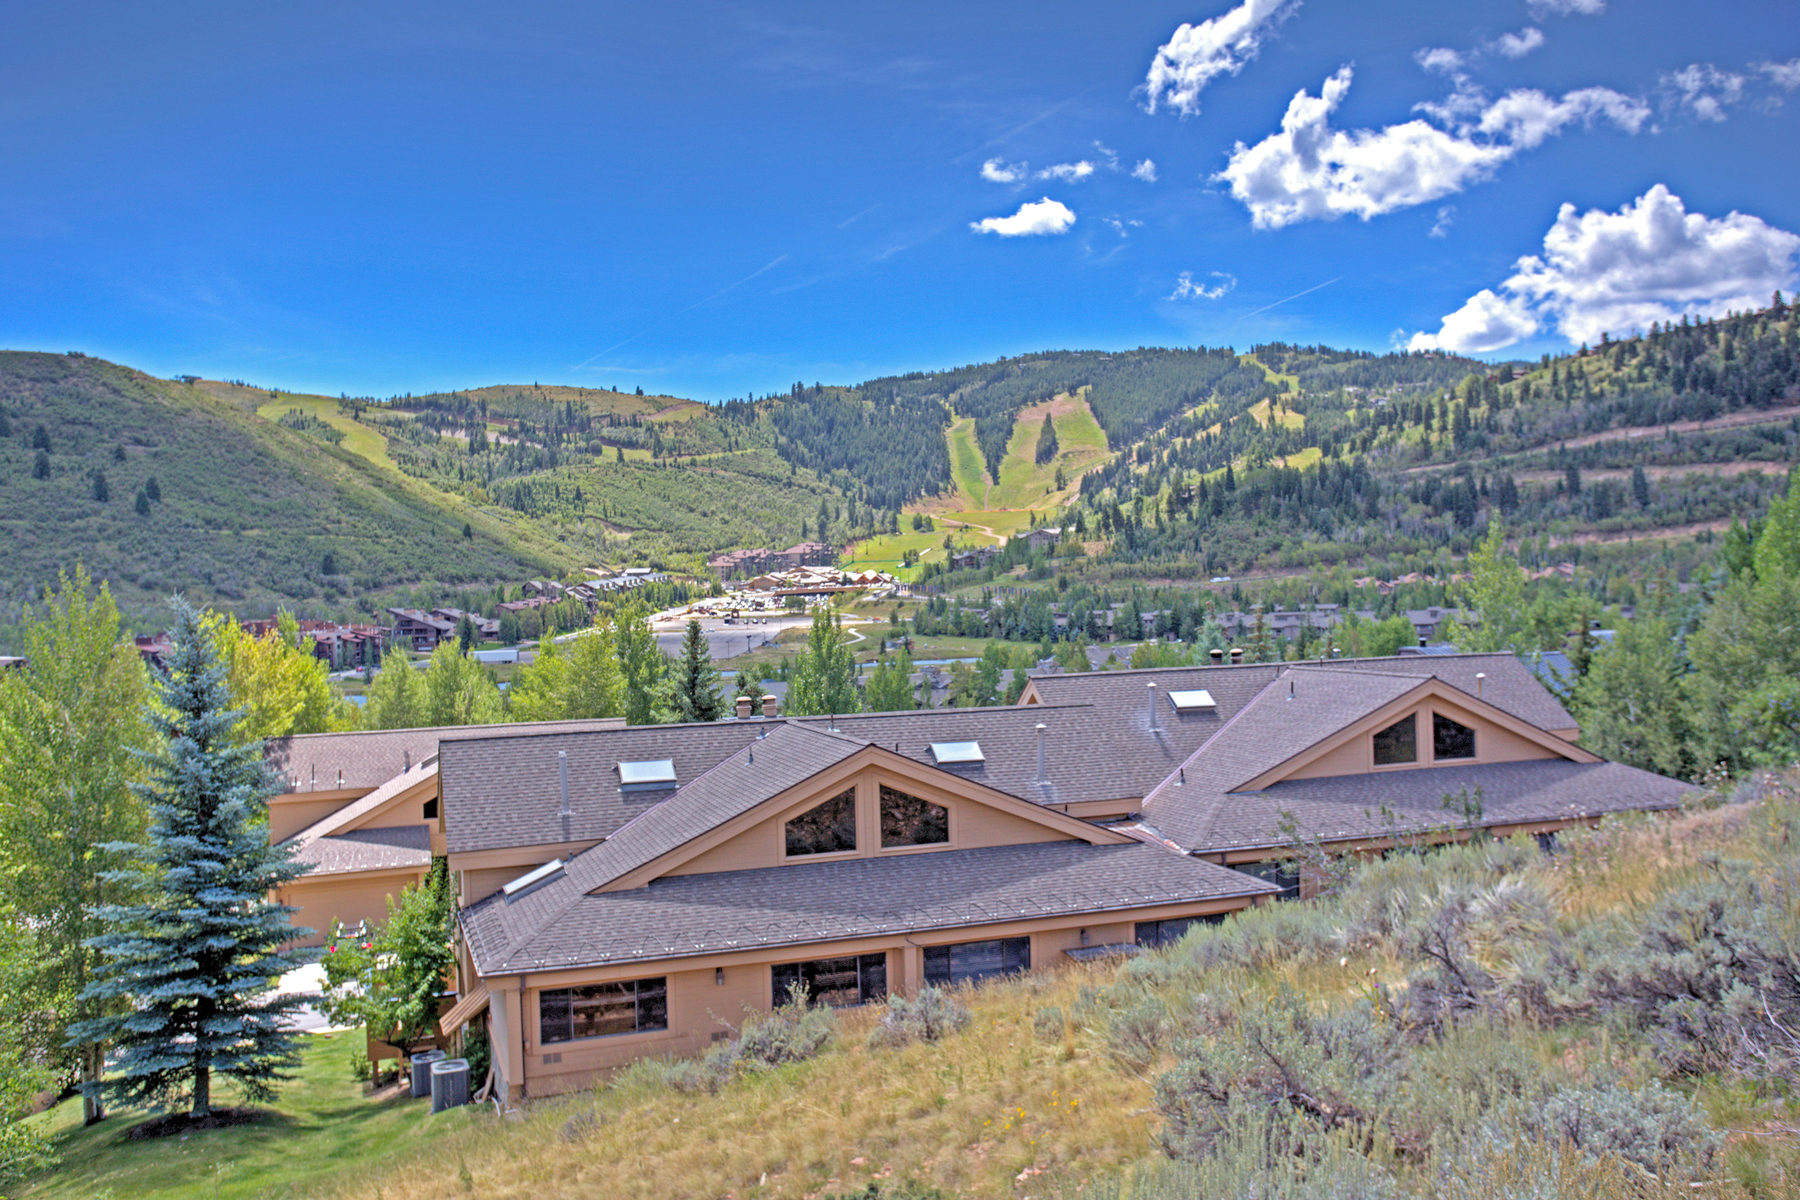 Property For Sale at A Must See Deer Valley Condo in Lower Deer Valley